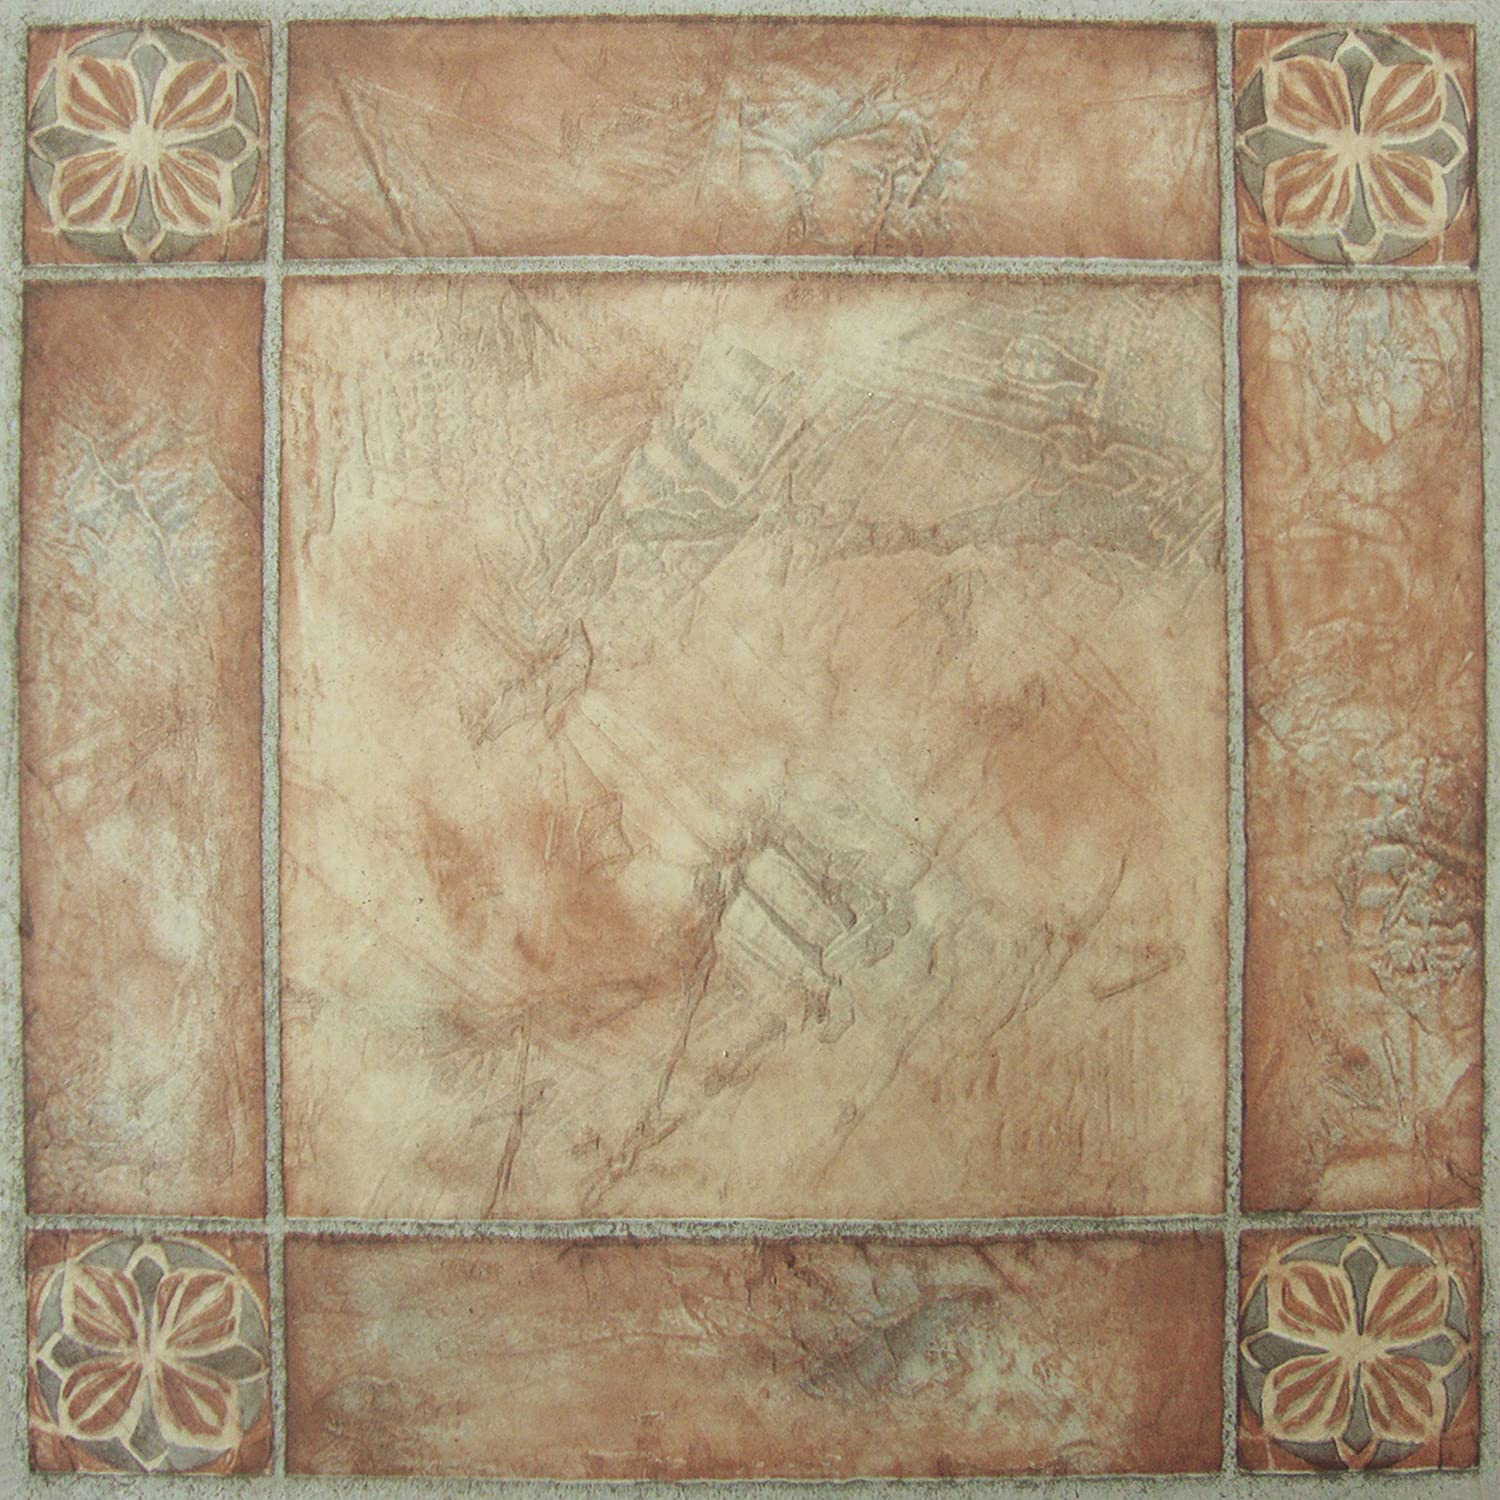 Achim Home Furnishings FTVMA44620 Nexus 12X12 Inch Vinyl Tile, Spanish  Rose, 20 Pack   Vinyl Tile Adhesives   Amazon.com